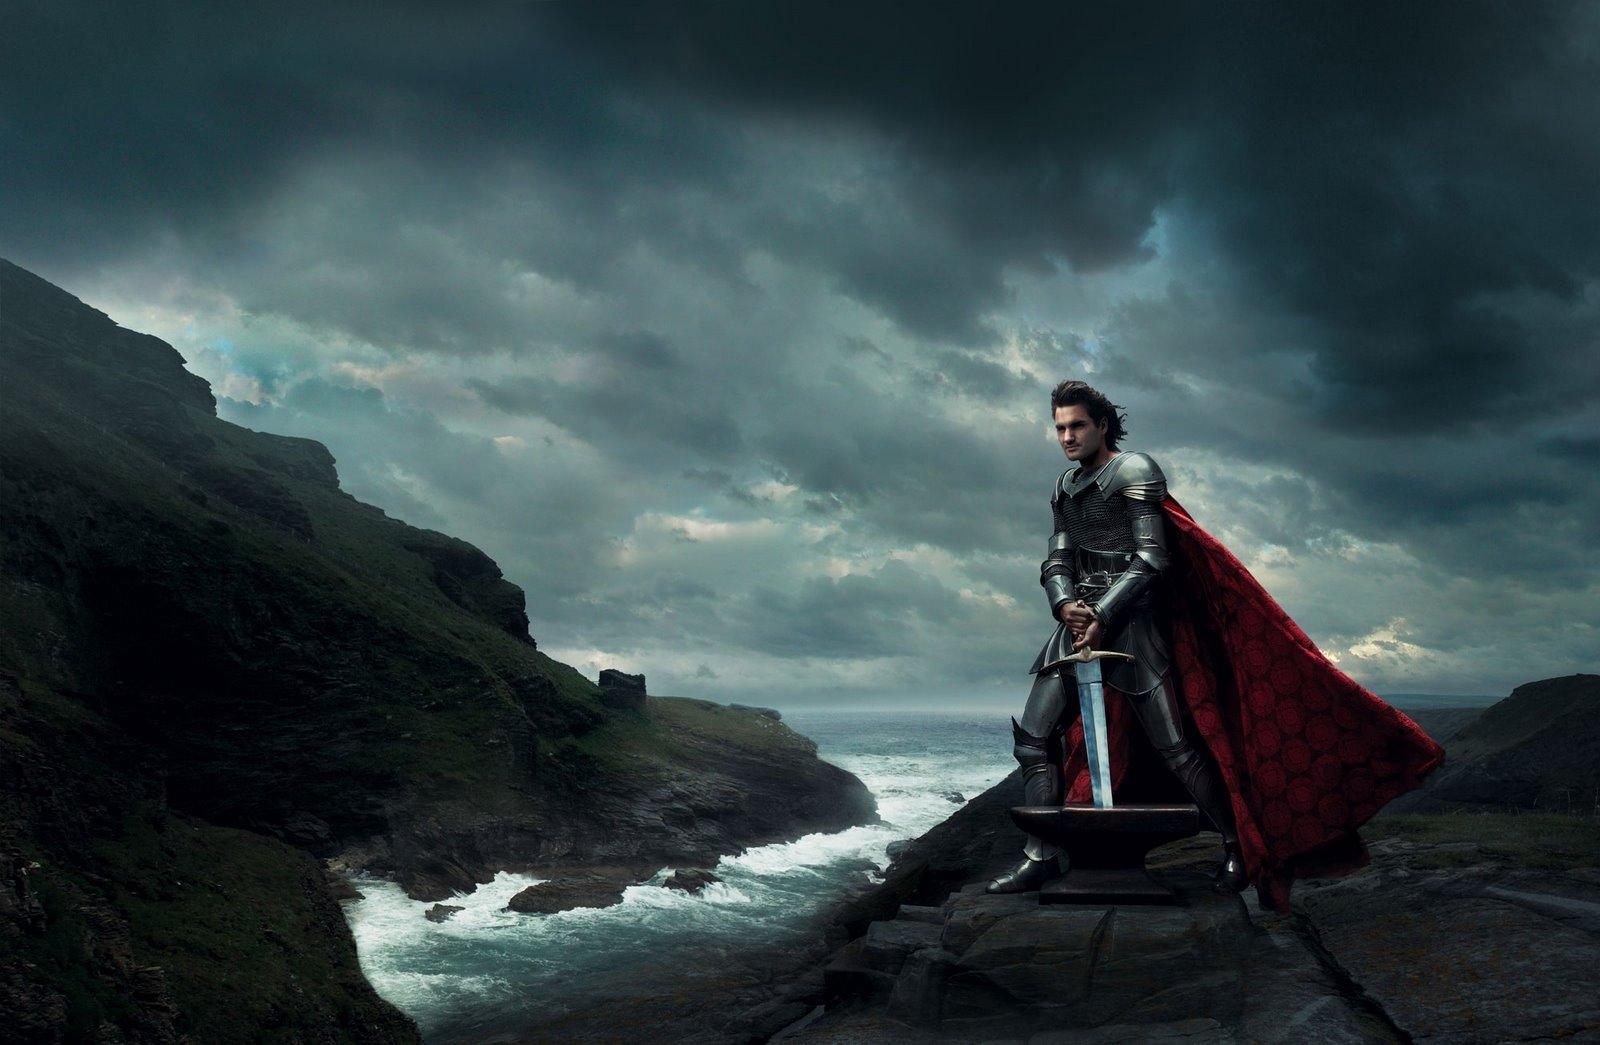 Roger Federer as King Arthur from The Sword in the Stone